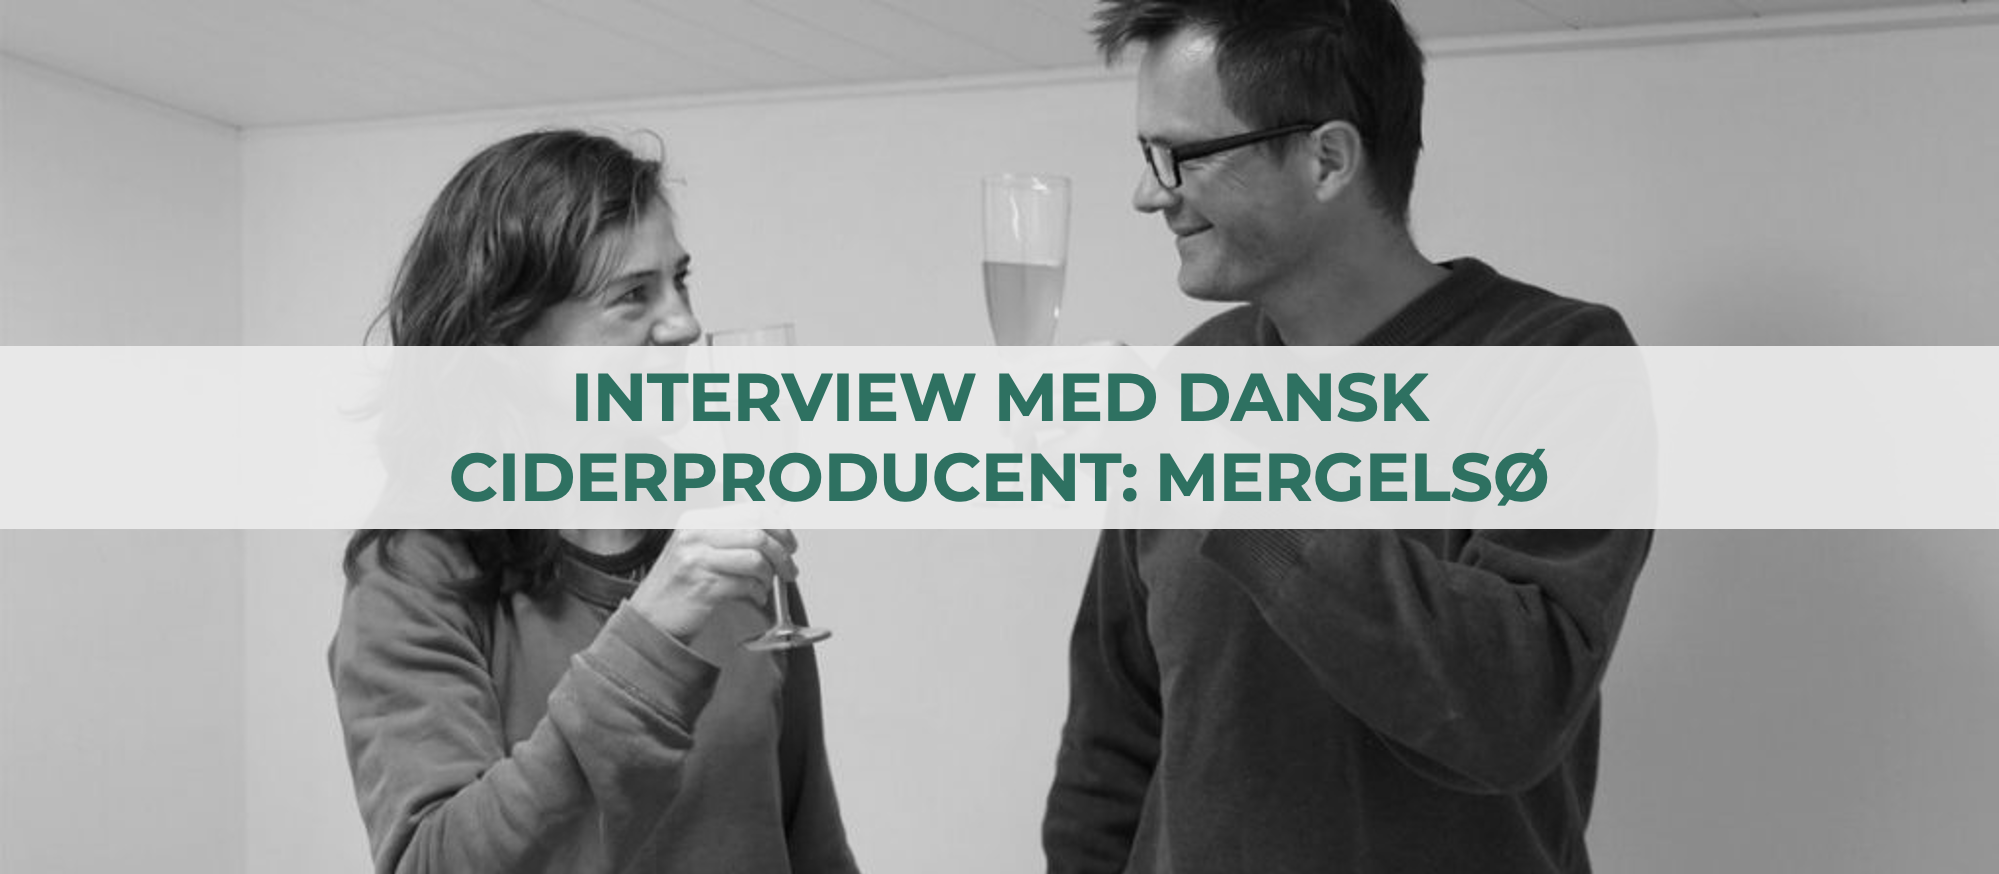 Mergelsø Interview